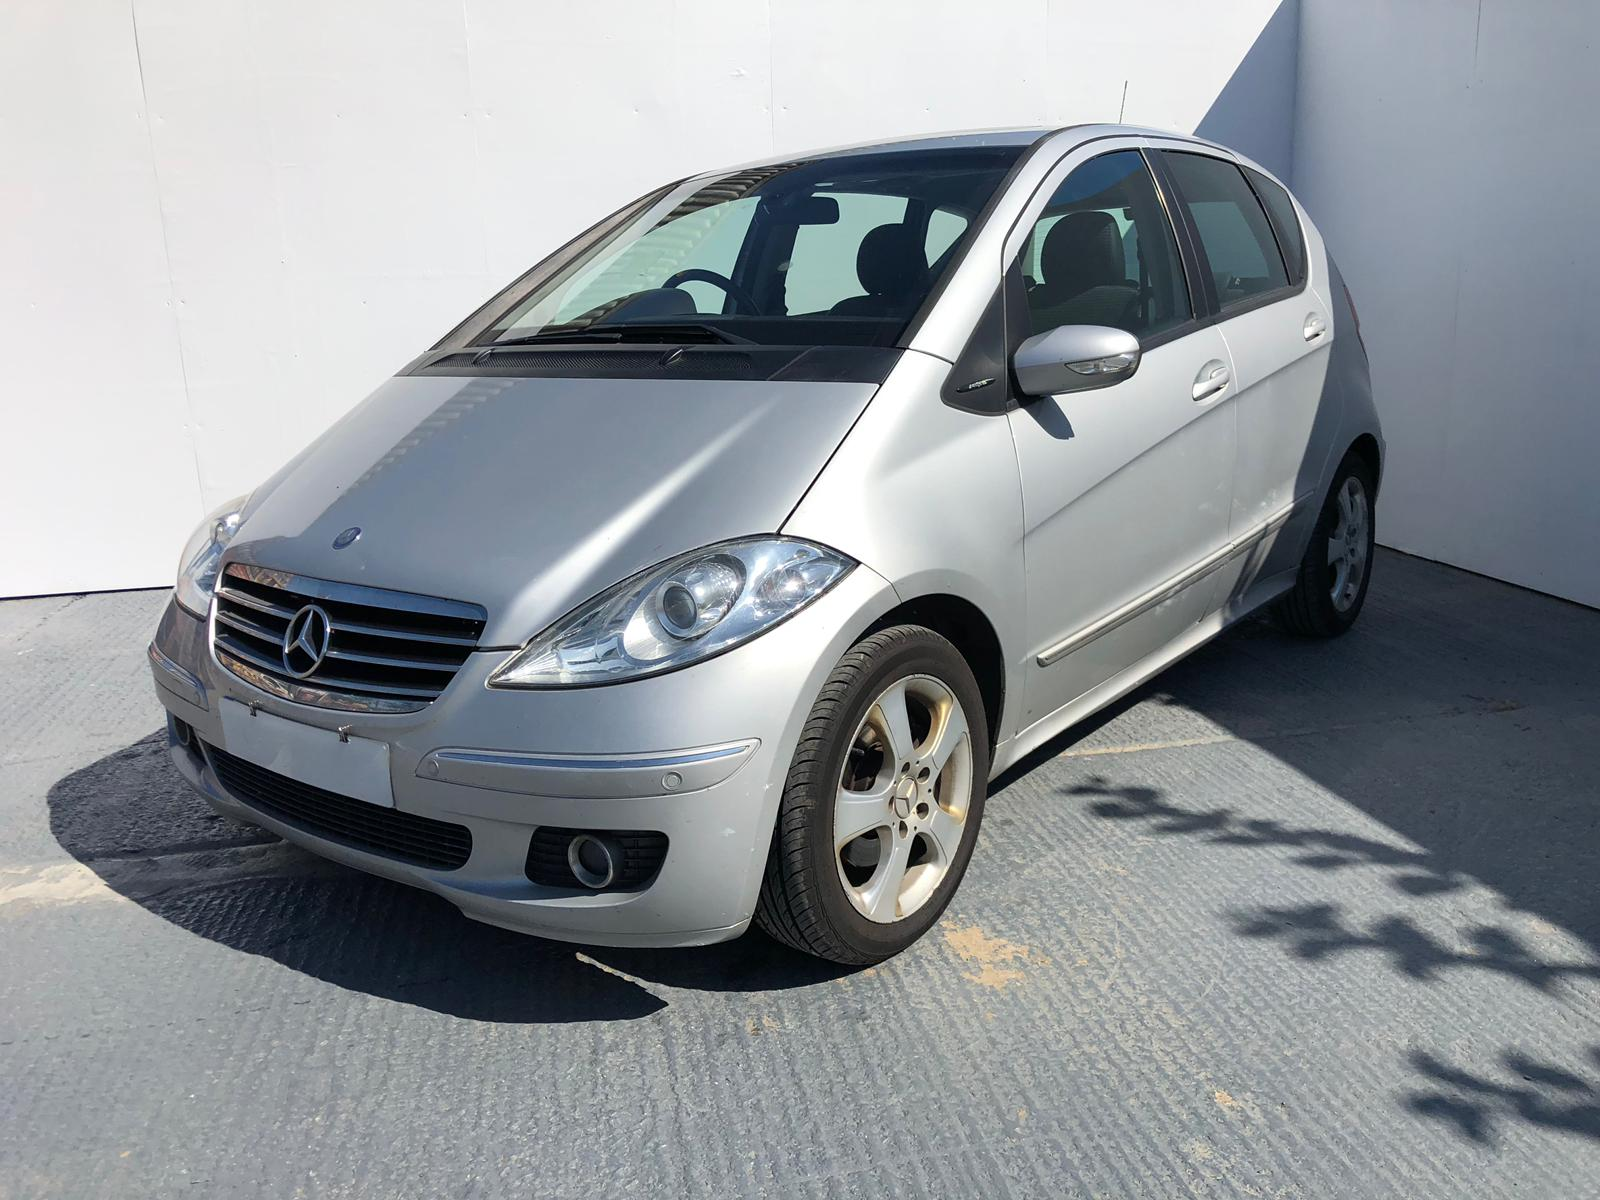 Mercedes-Benz A Class 1.7 A170 Avantgarde SE Hatchback 5d 1699cc